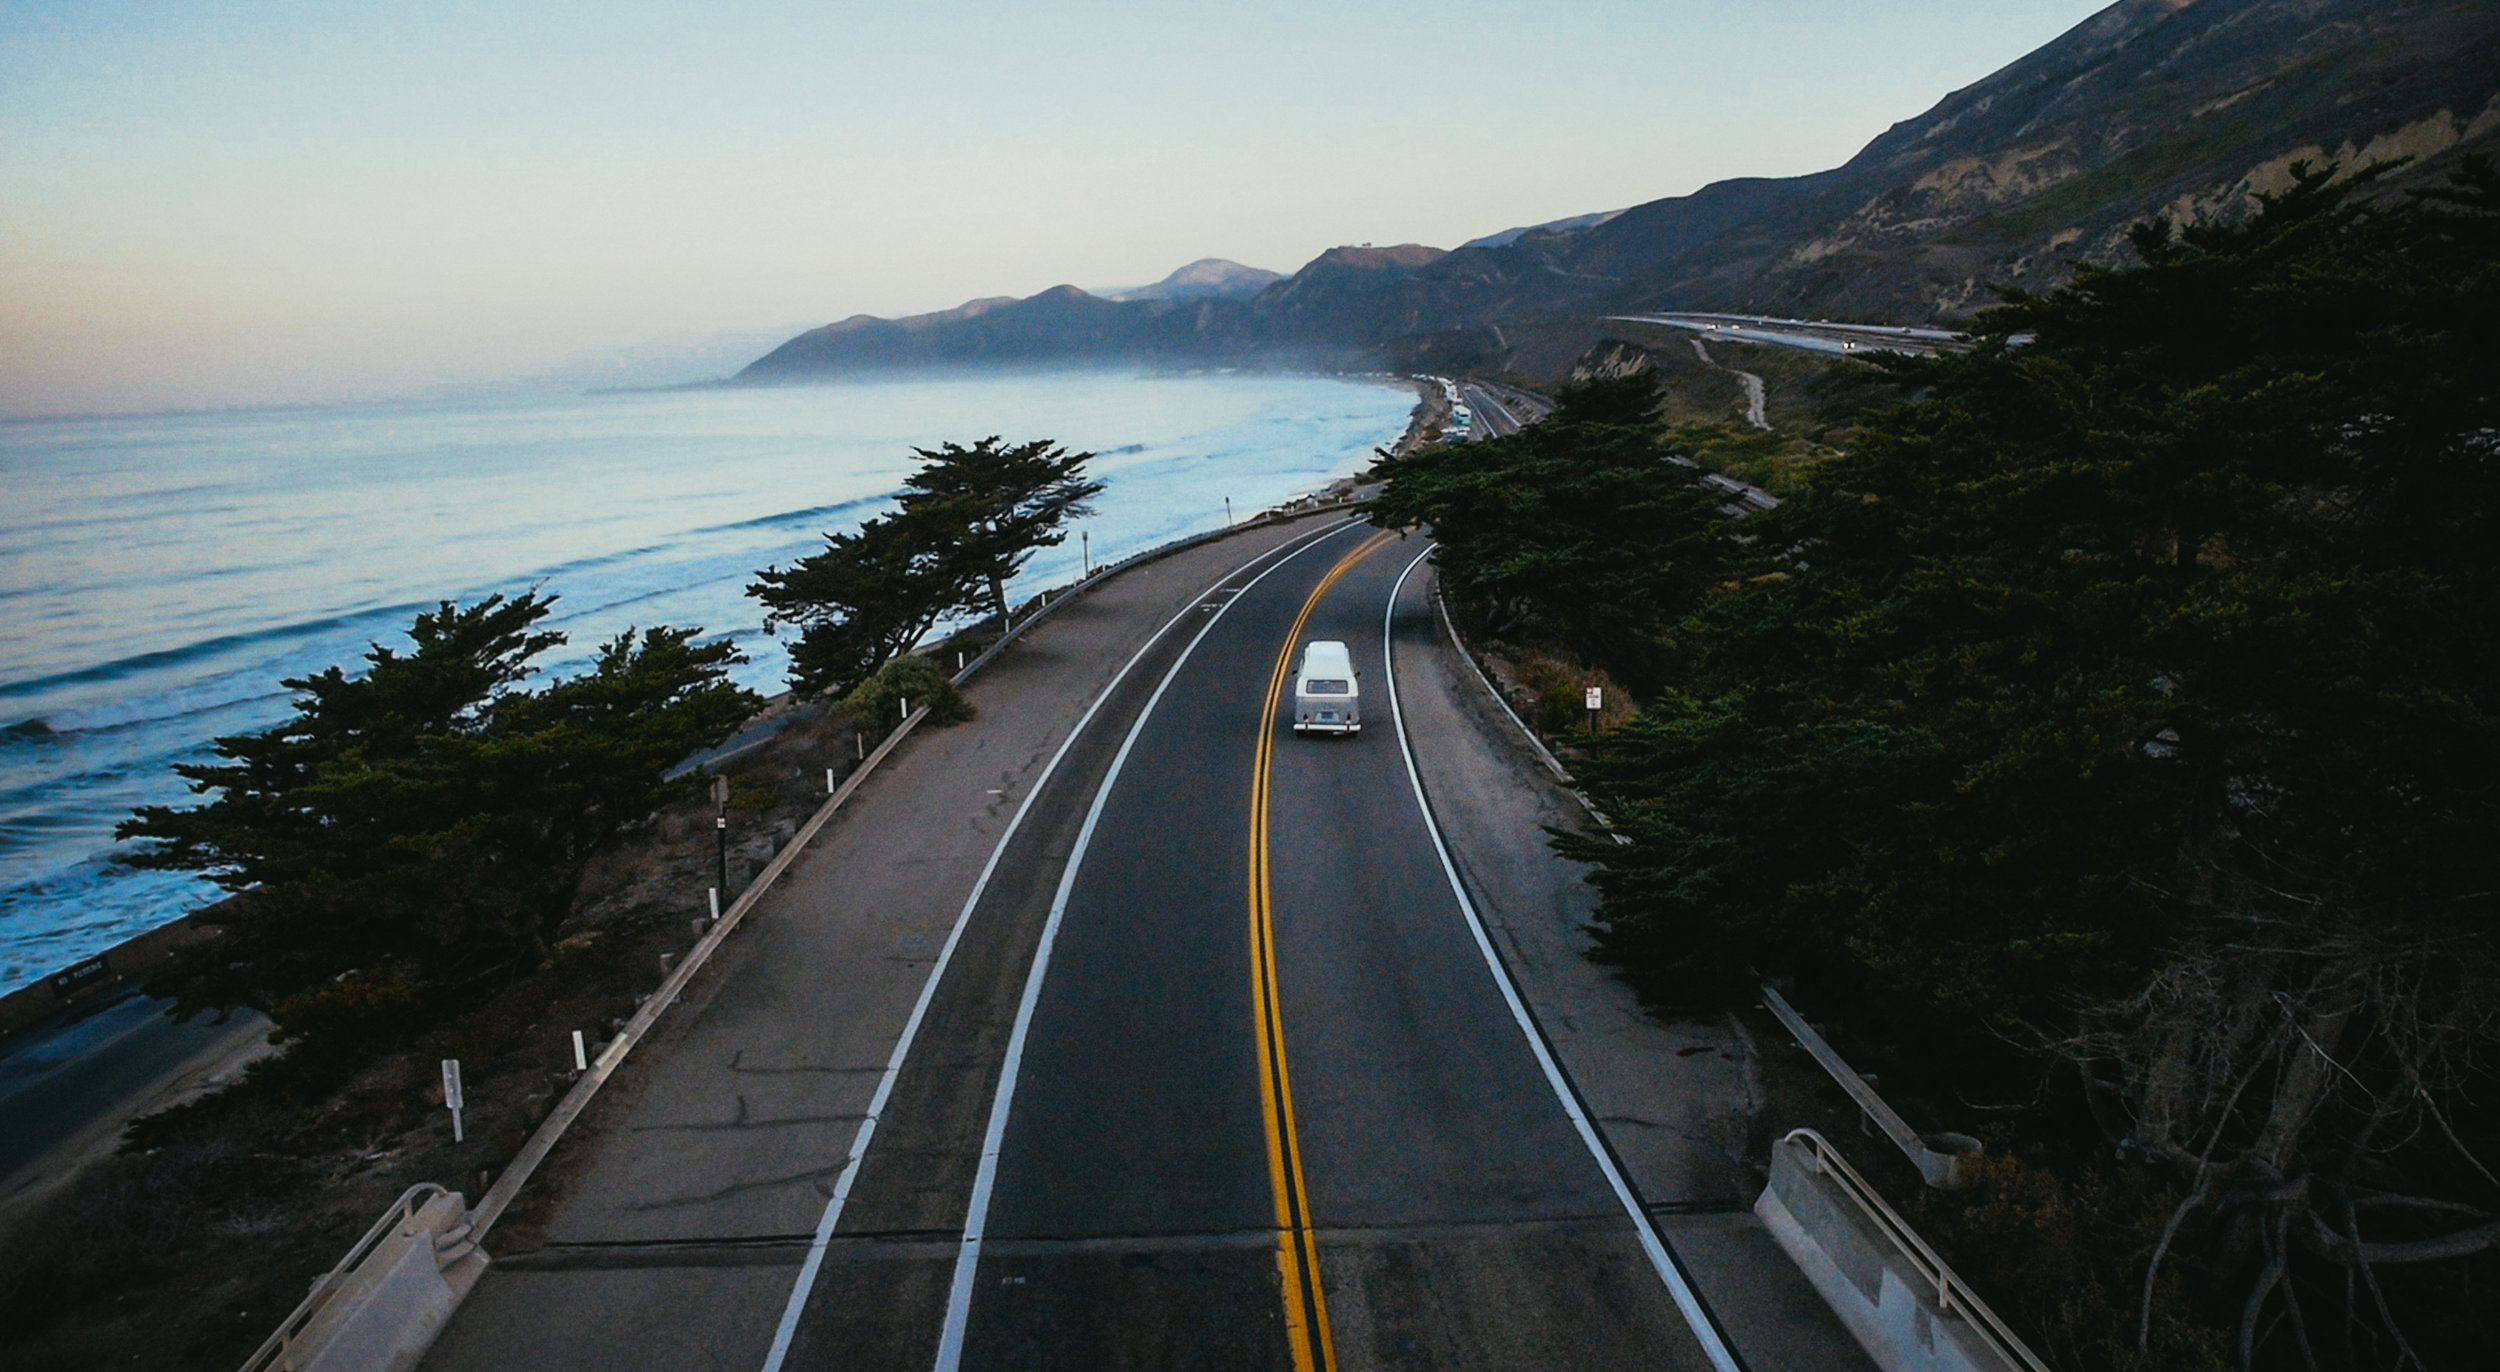 Heading up highway 1 North of Ventura